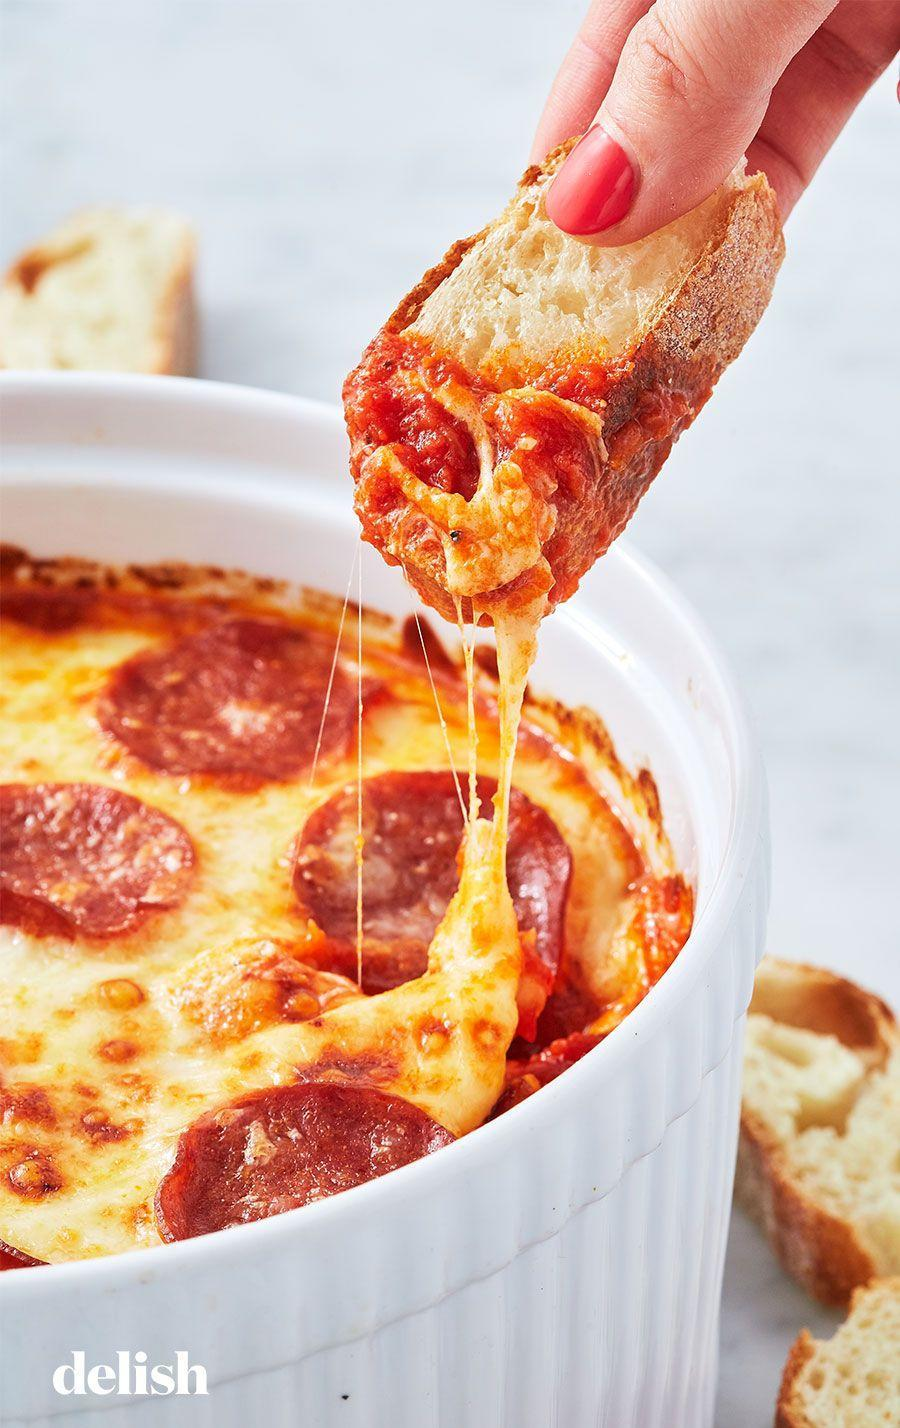 "<p>A pizza dip is obviously good, but a MEAT LOVERS' pizza dip? That's next-level good. There are two ways to make this dip, but the Instant Pot version is the way to go.</p><p>Get the recipe from <a href=""https://www.delish.com/cooking/recipe-ideas/a26001169/pizza-dip-recipe/"" rel=""nofollow noopener"" target=""_blank"" data-ylk=""slk:Delish"" class=""link rapid-noclick-resp"">Delish</a>.</p><p><a class=""link rapid-noclick-resp"" href=""https://www.amazon.com/Instant-Pot-Multi-Use-Programmable-Pressure/dp/B00FLYWNYQ?tag=syn-yahoo-20&ascsubtag=%5Bartid%7C1782.g.28253836%5Bsrc%7Cyahoo-us"" rel=""nofollow noopener"" target=""_blank"" data-ylk=""slk:BUY NOW"">BUY NOW</a> <strong><em>Instant Pot, $90, amazon.com</em></strong></p>"